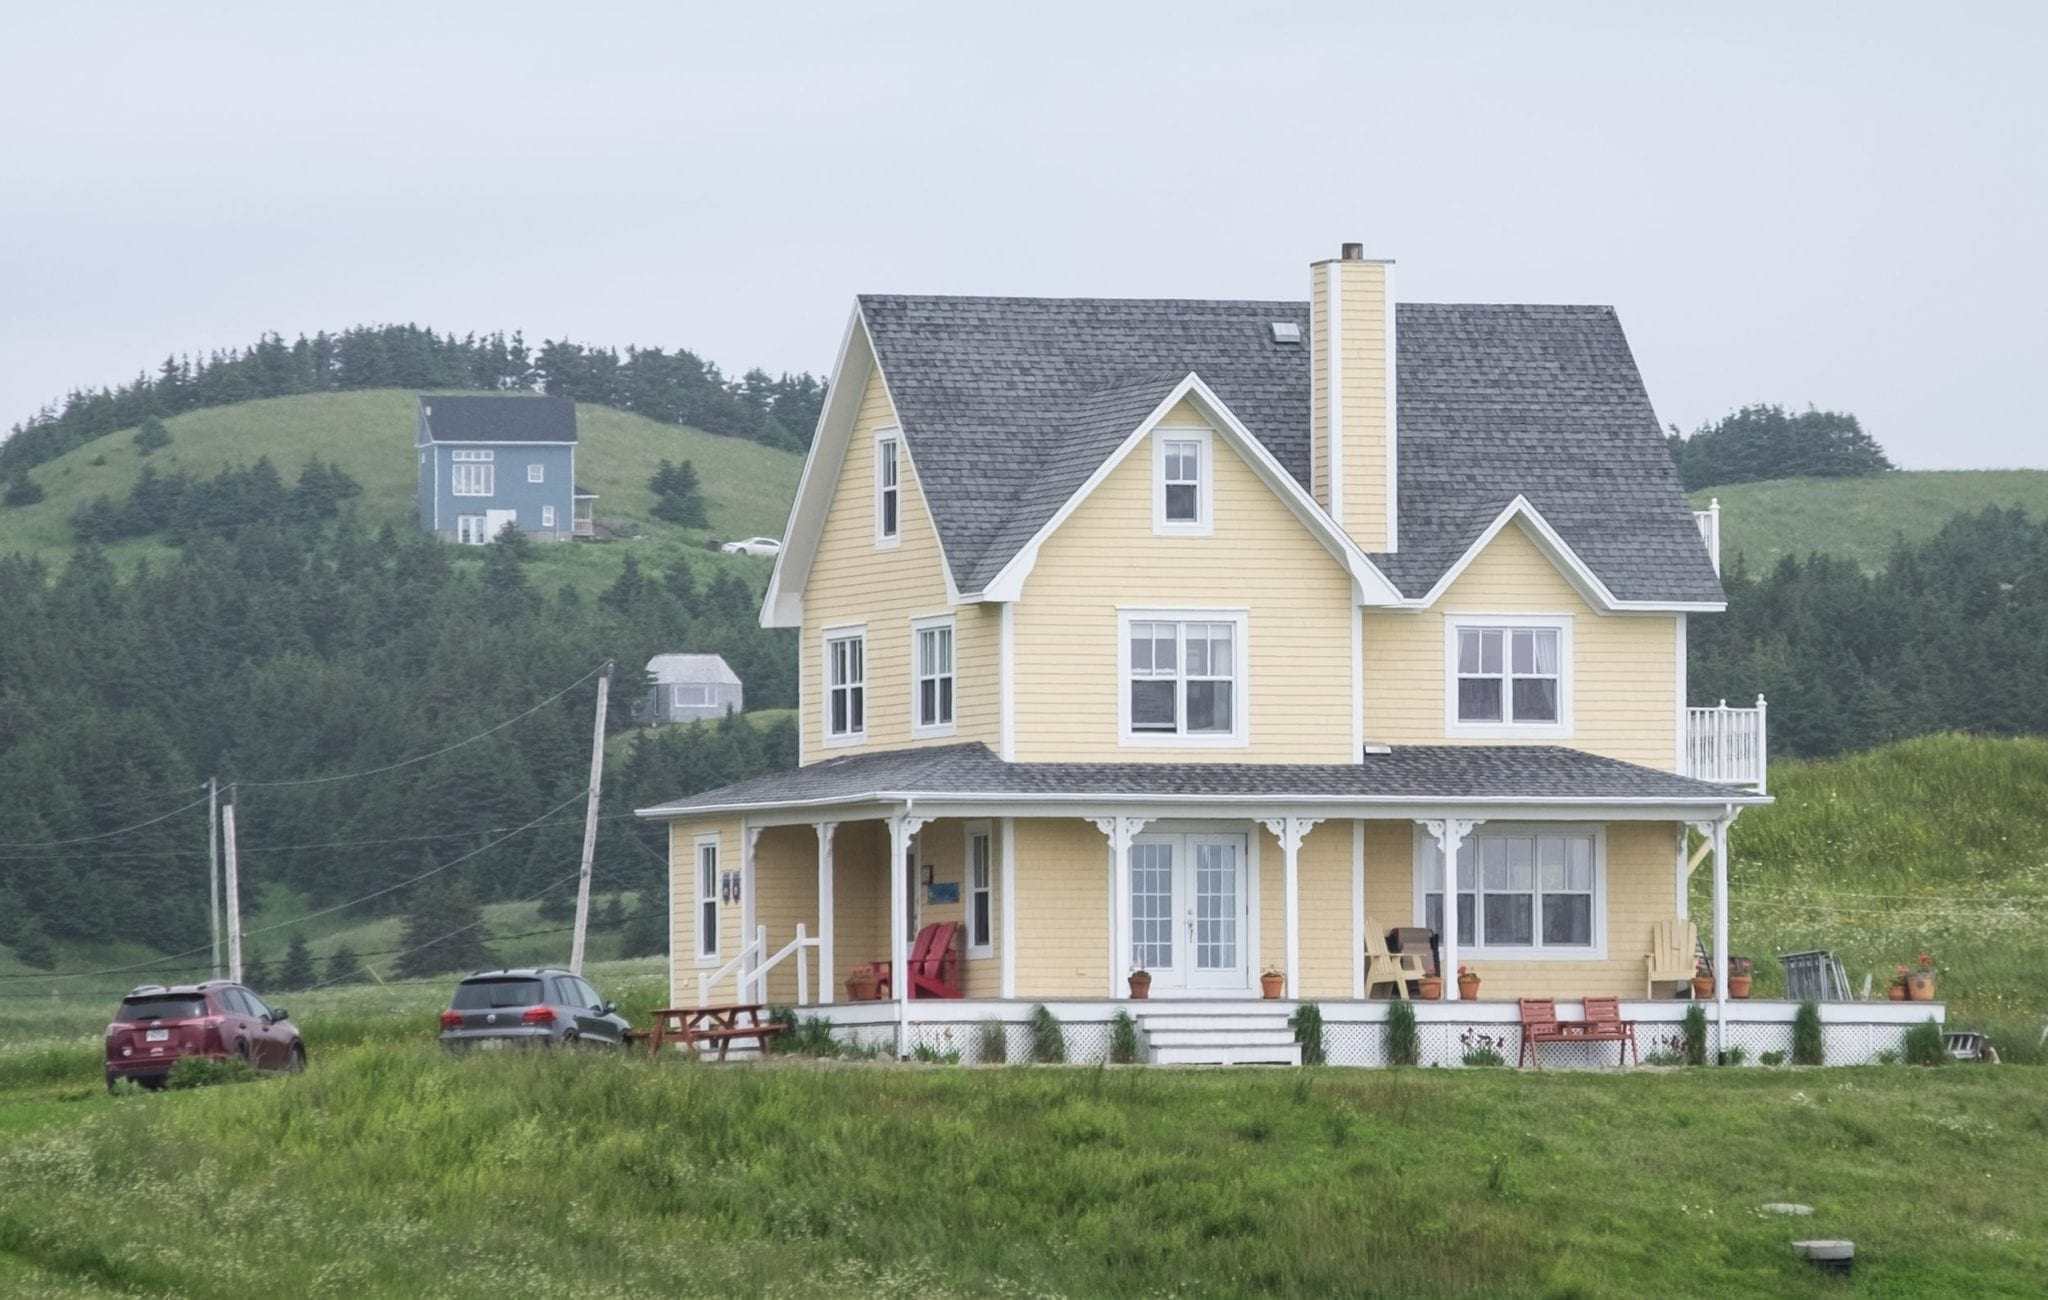 A large pale yellow house with a wraparound porch perched on a hill in the Iles-de-la-Madeleine.